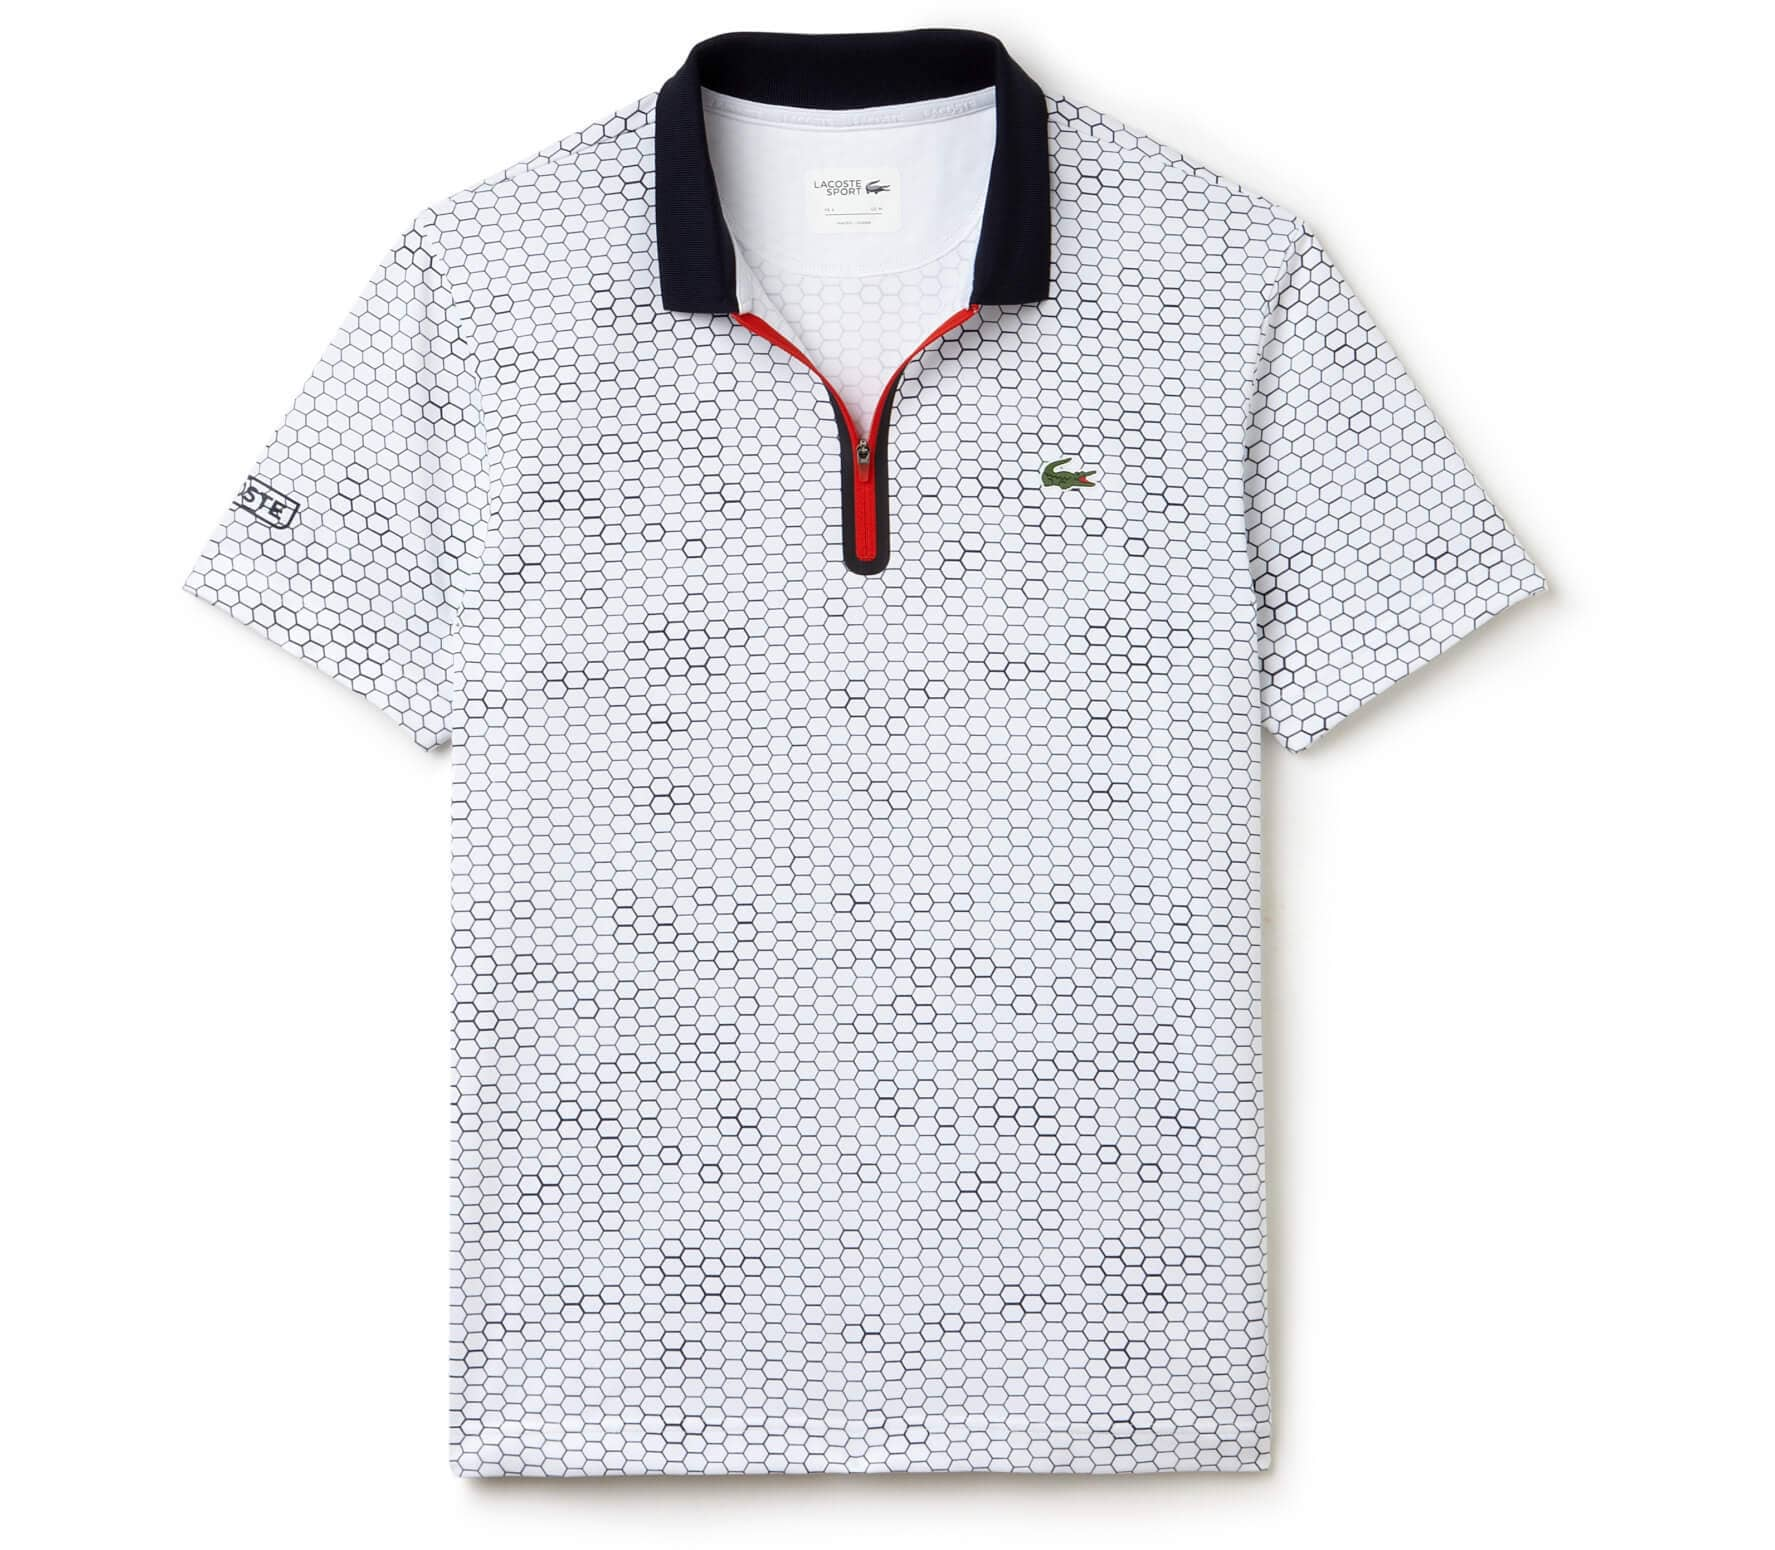 e58429be679 Lacoste - men s tennis polo top (grey dark blue) - buy it at the ...